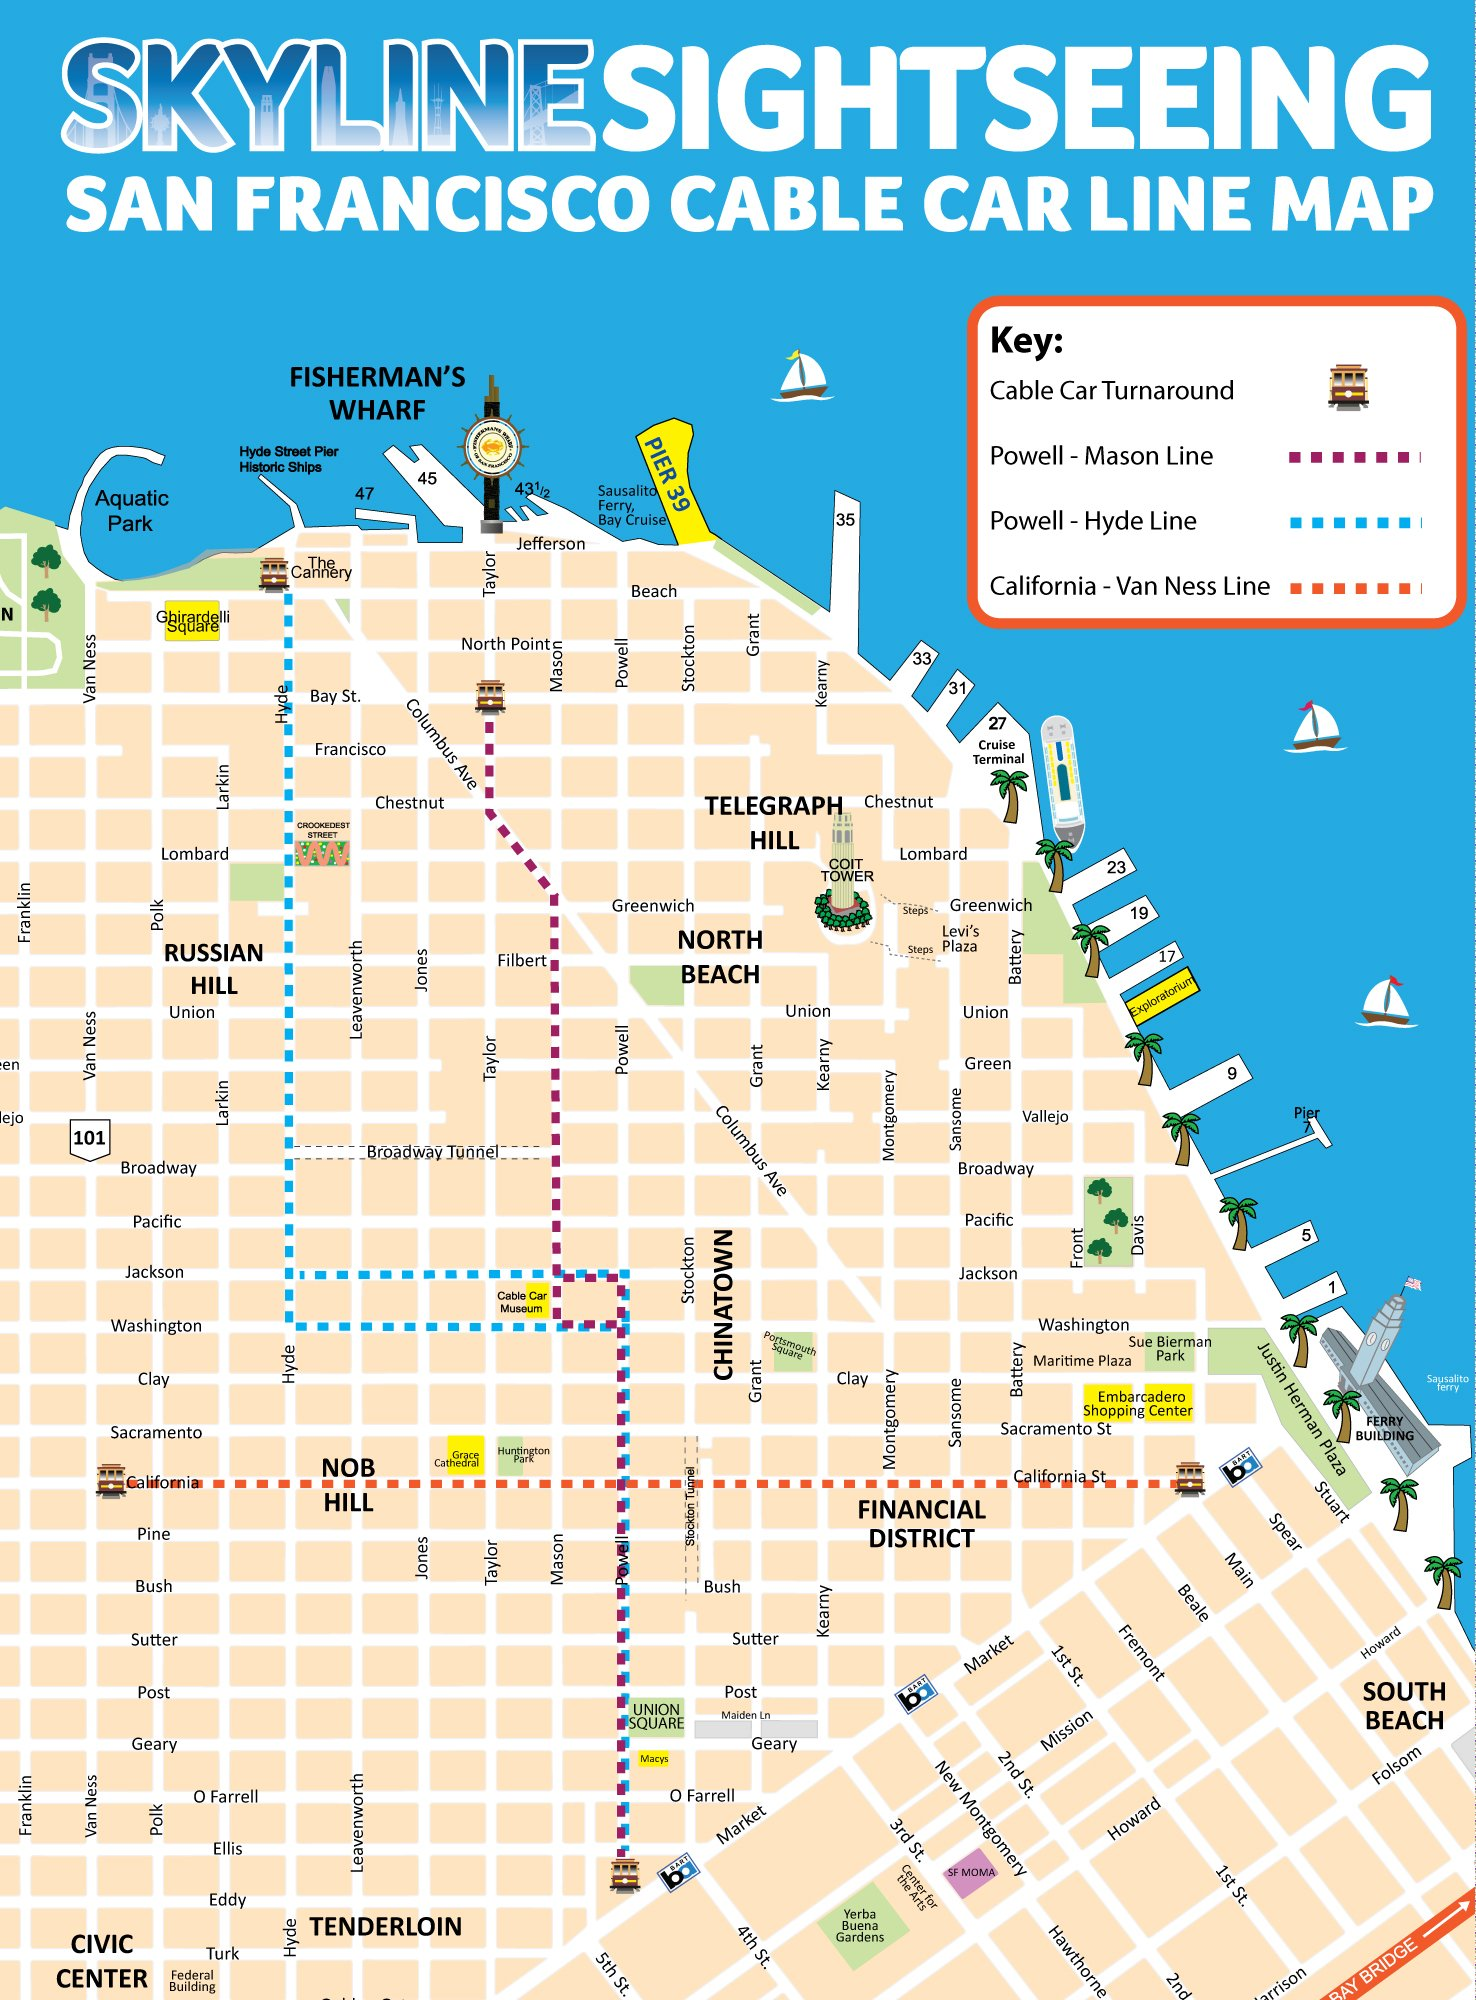 San Francisco Cable Car Line Map Skyline Sightseeing